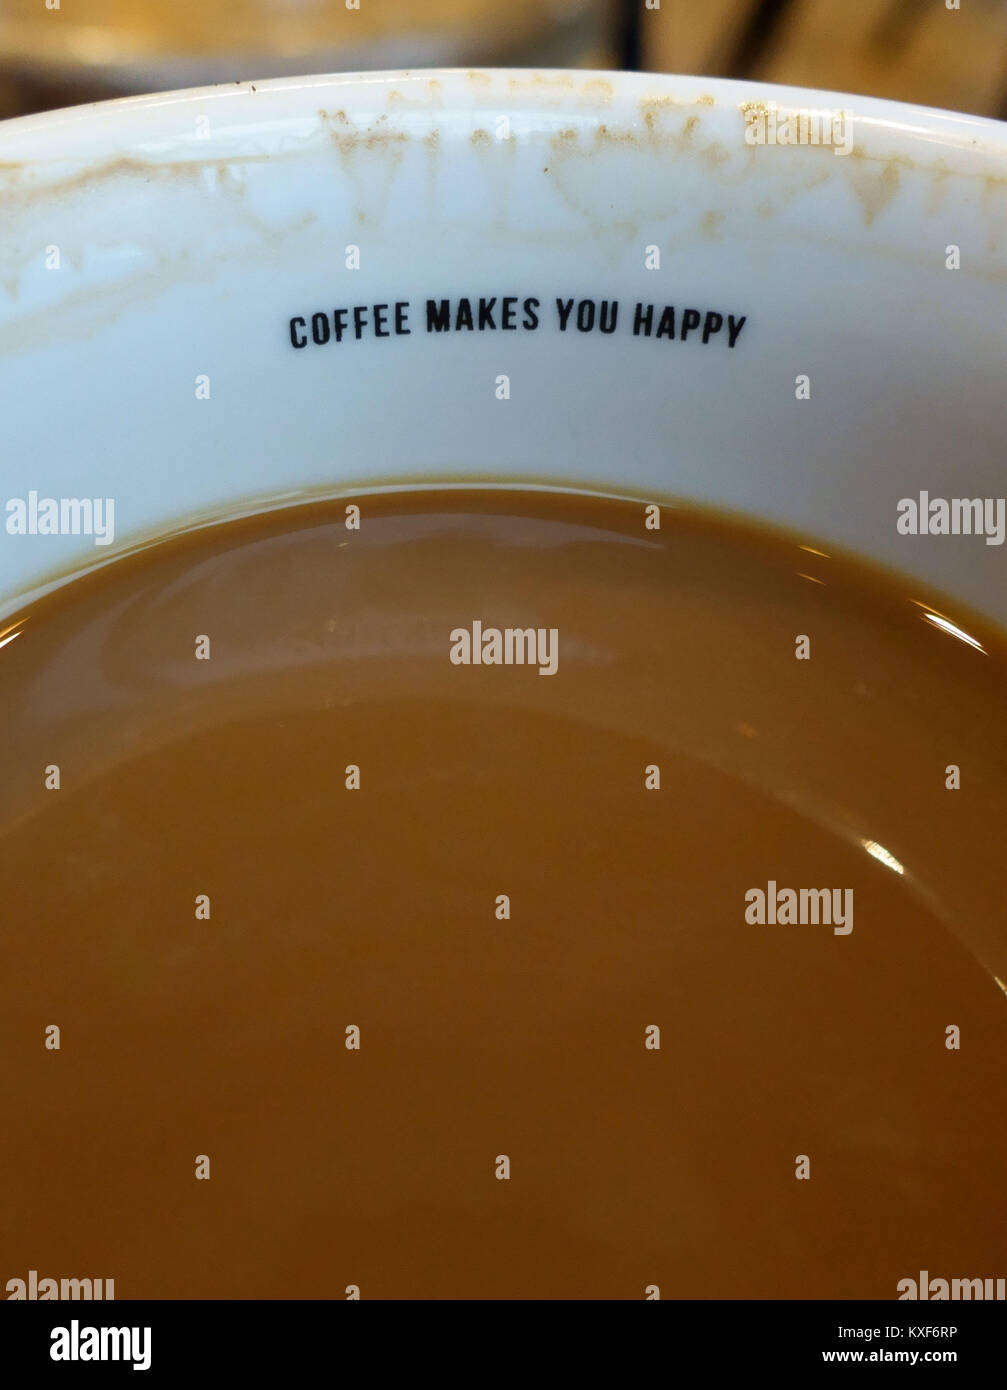 'Coffee Makes You Happy' slogan inside coffee shop cup, London - Stock Image